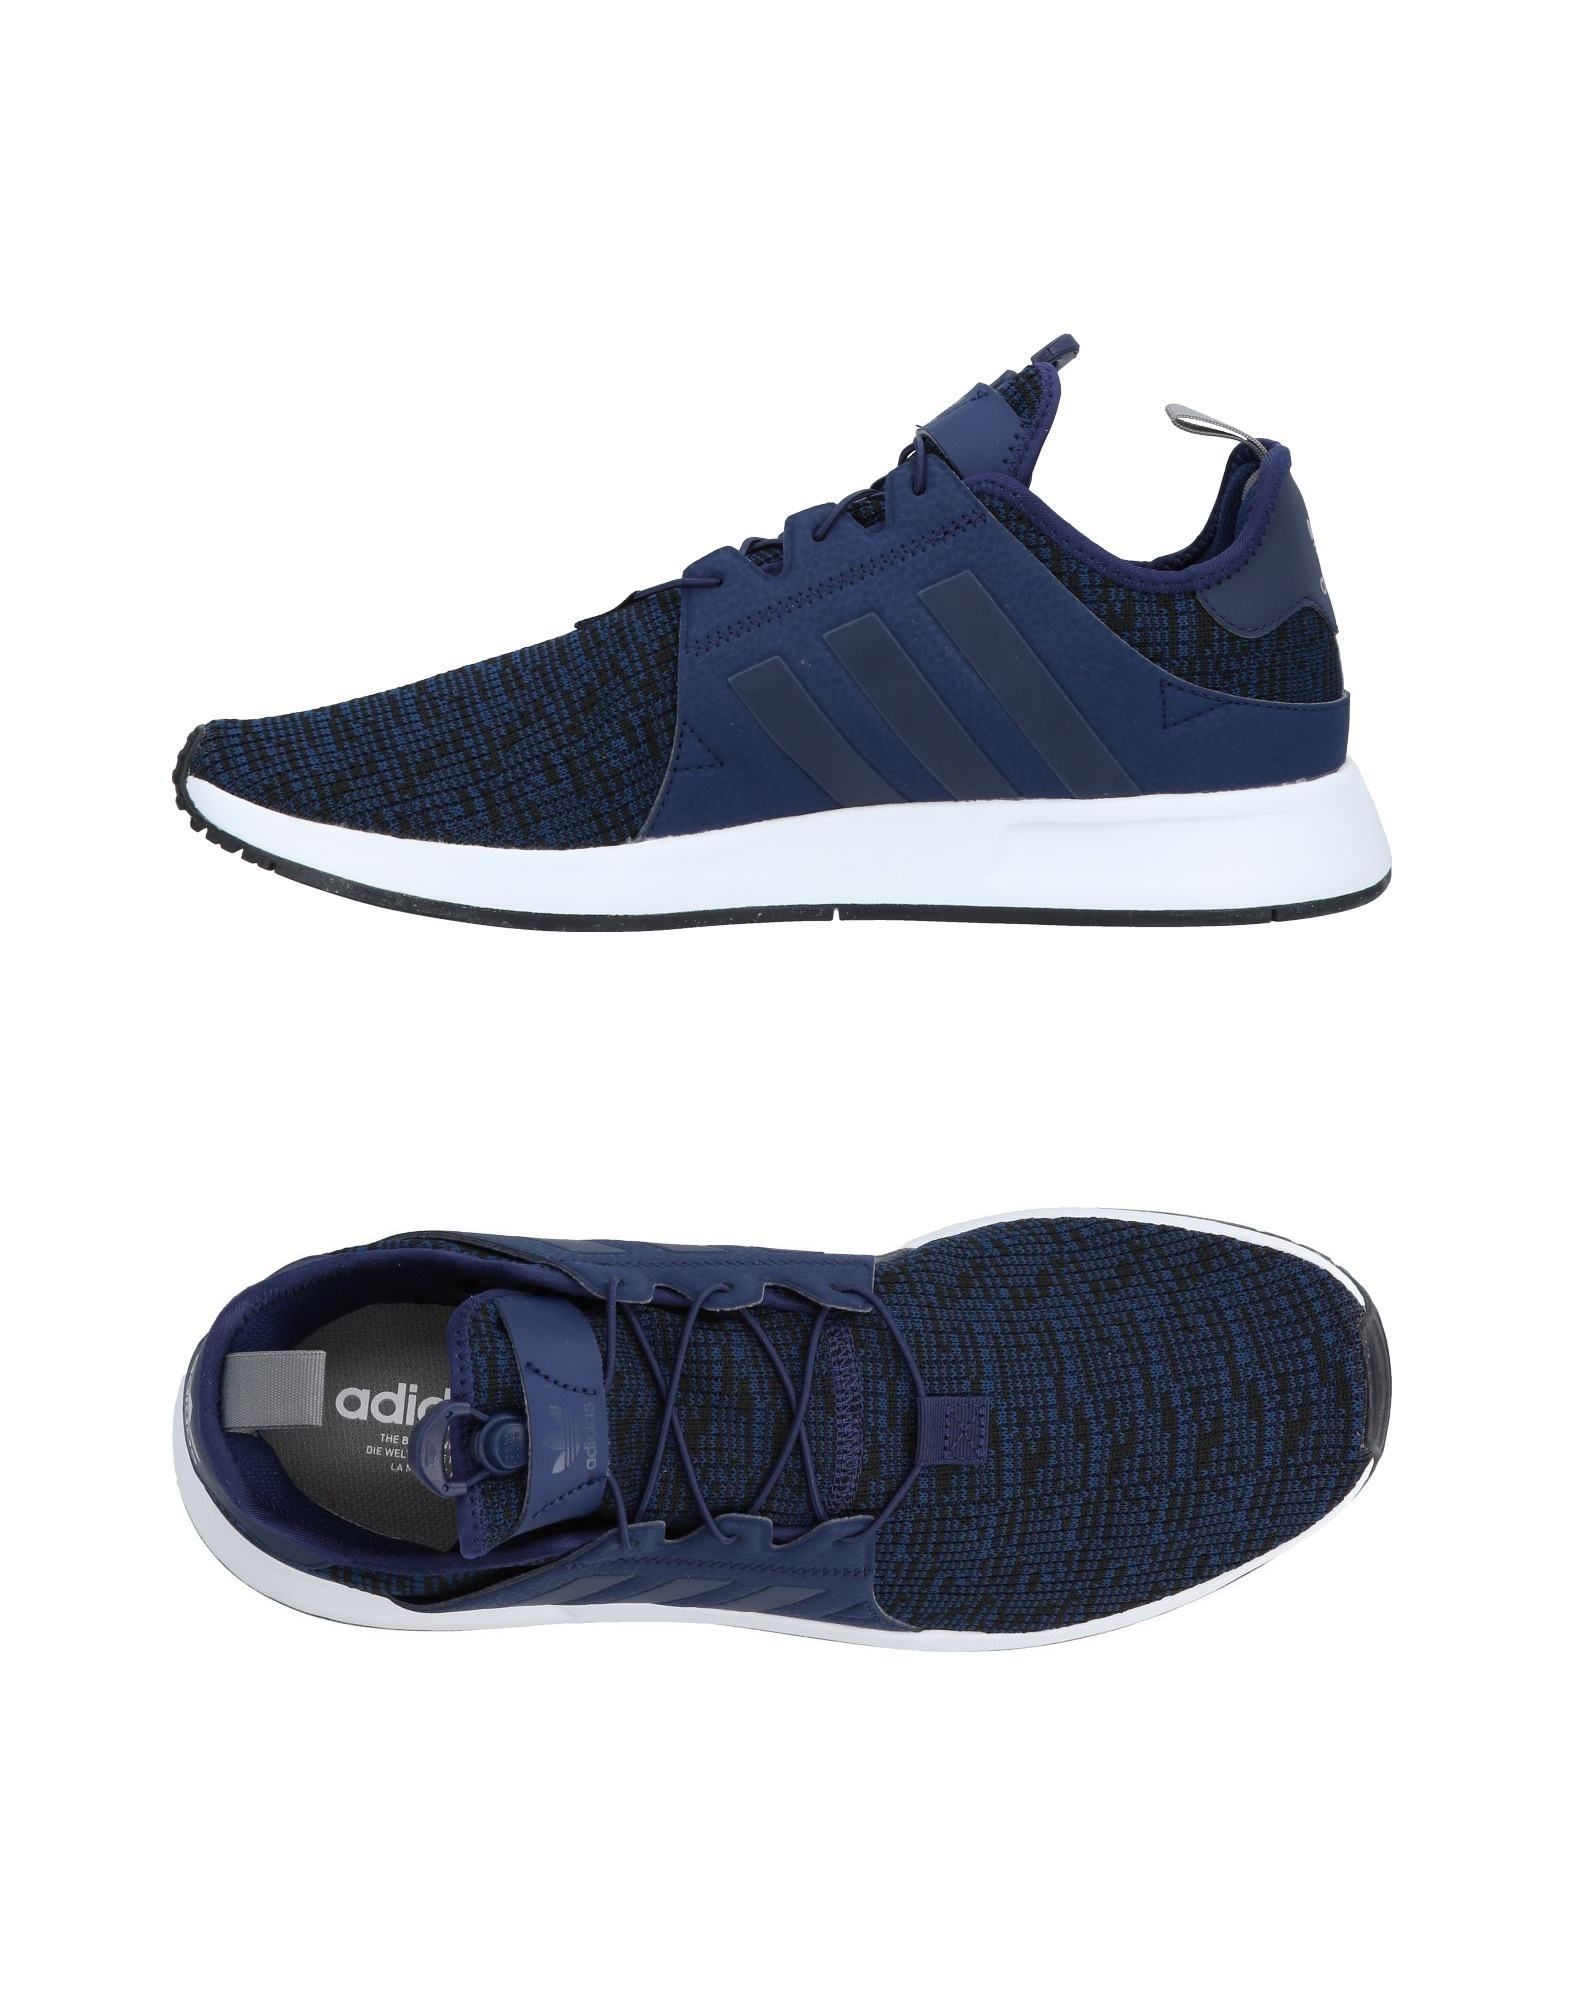 Sneakers Adidas Originals Uomo - 11463605MA